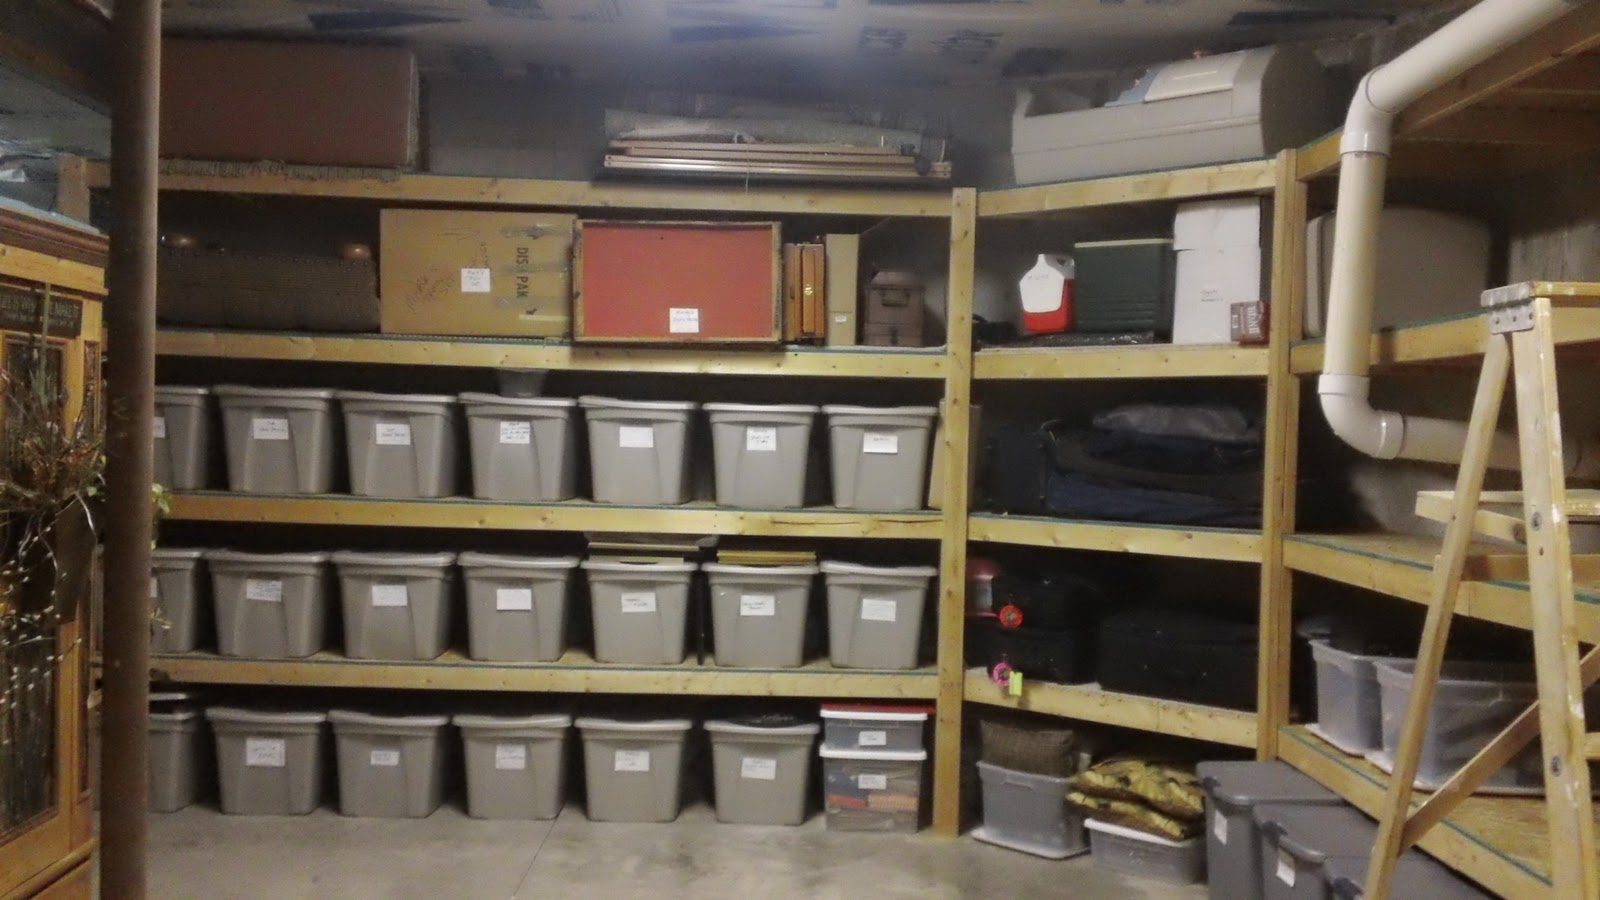 Basement Designs Creative creative ideas for basement storage in trenton nj